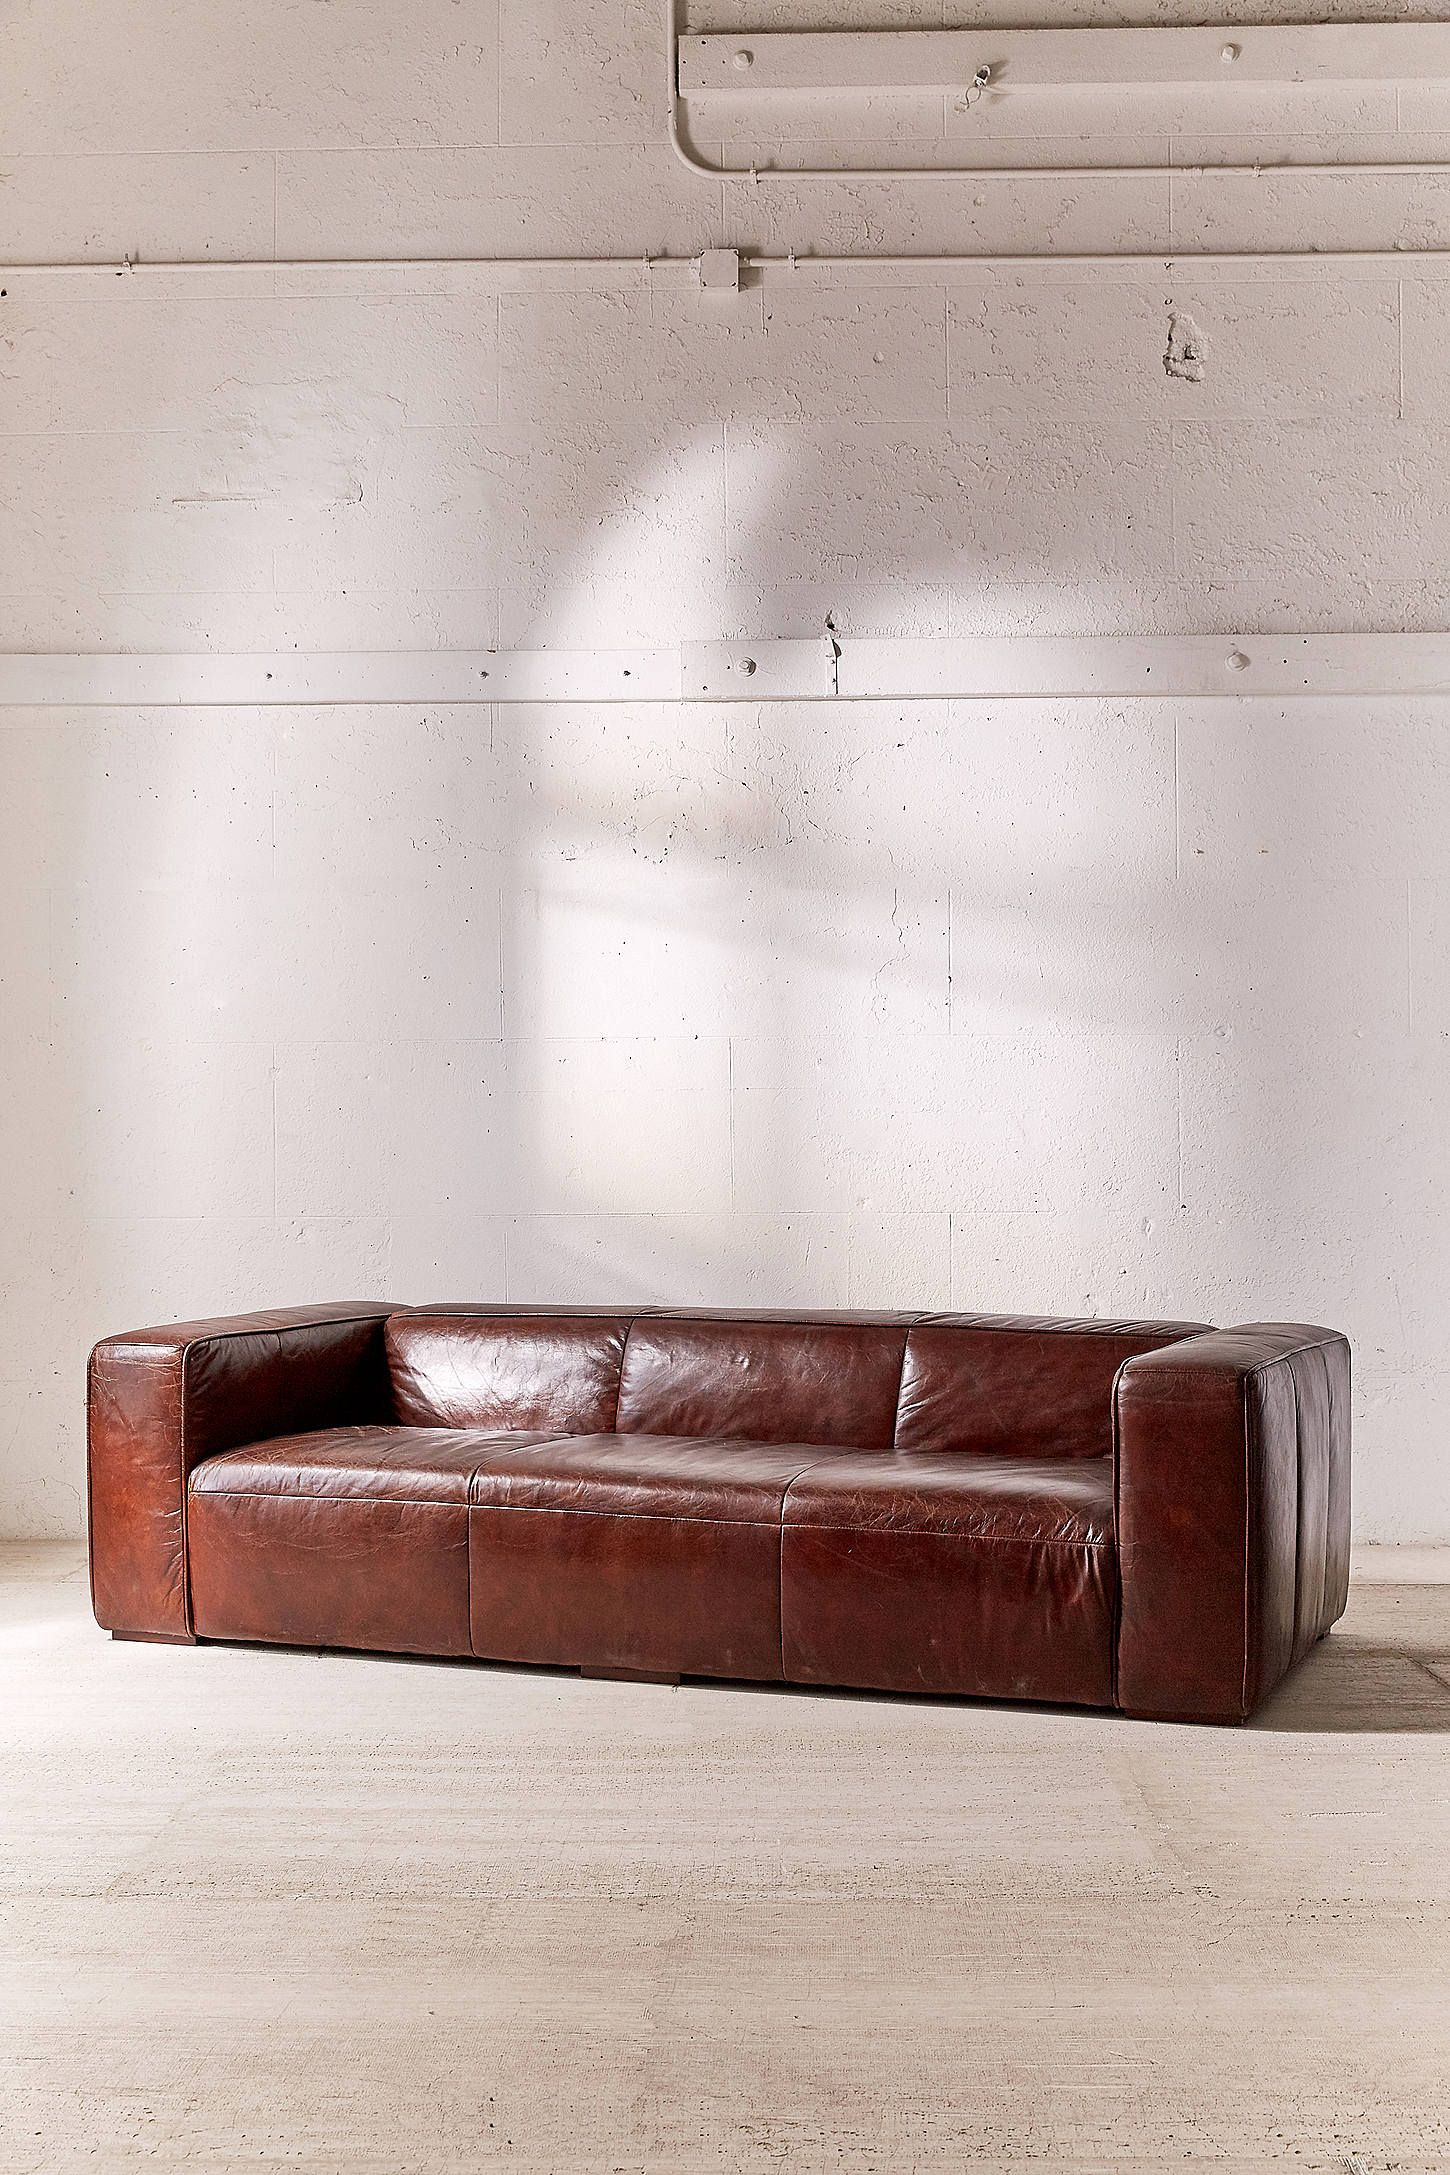 Baker Leather Sofa At Urban Outers Today We Carry All The Latest Styles Colors And Brands For You To Choose From Right Here